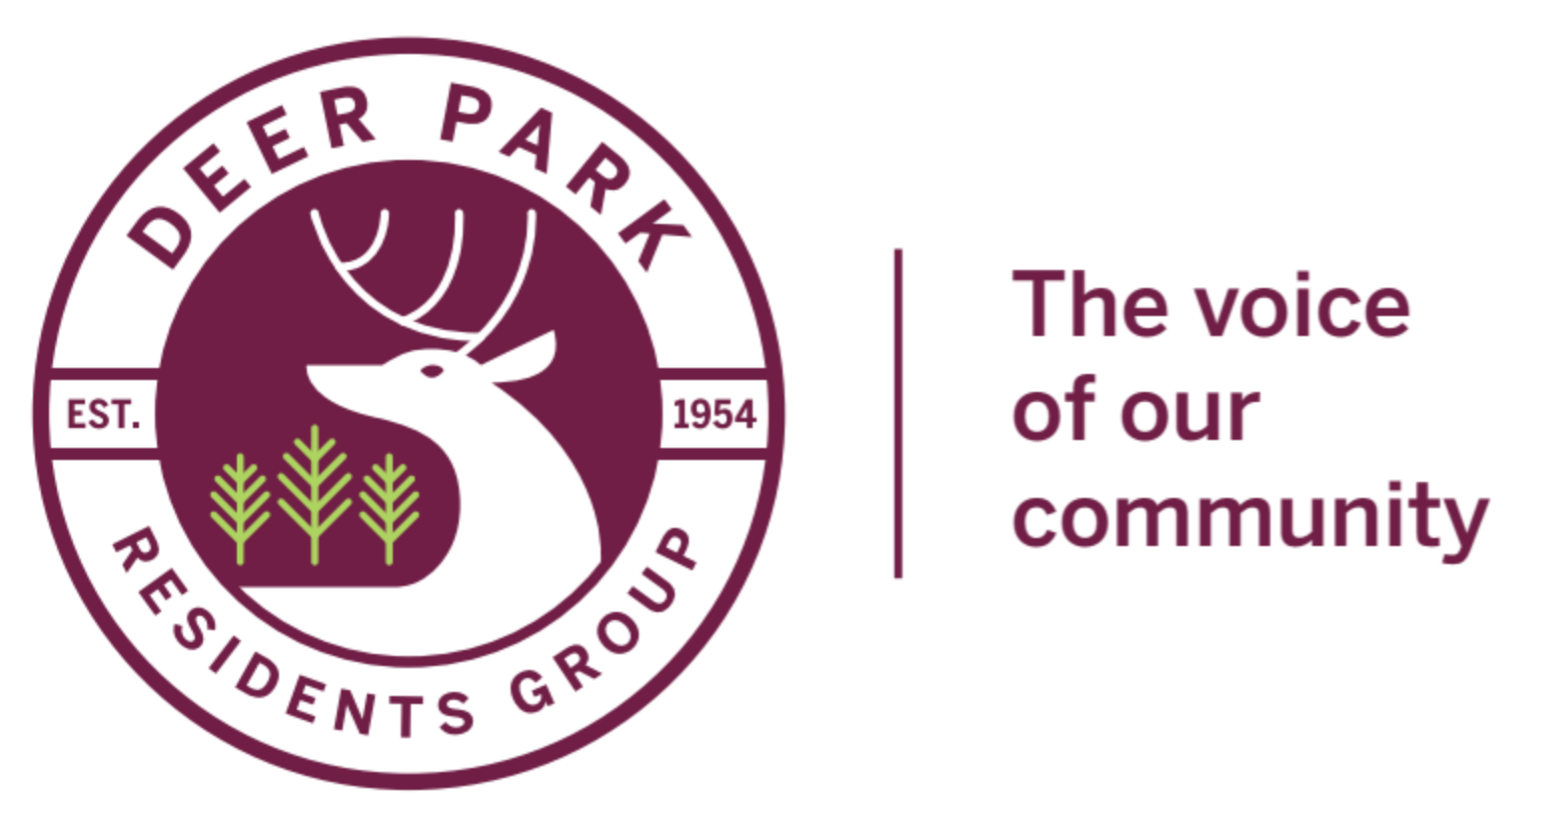 Deer Park Residents Group Logo